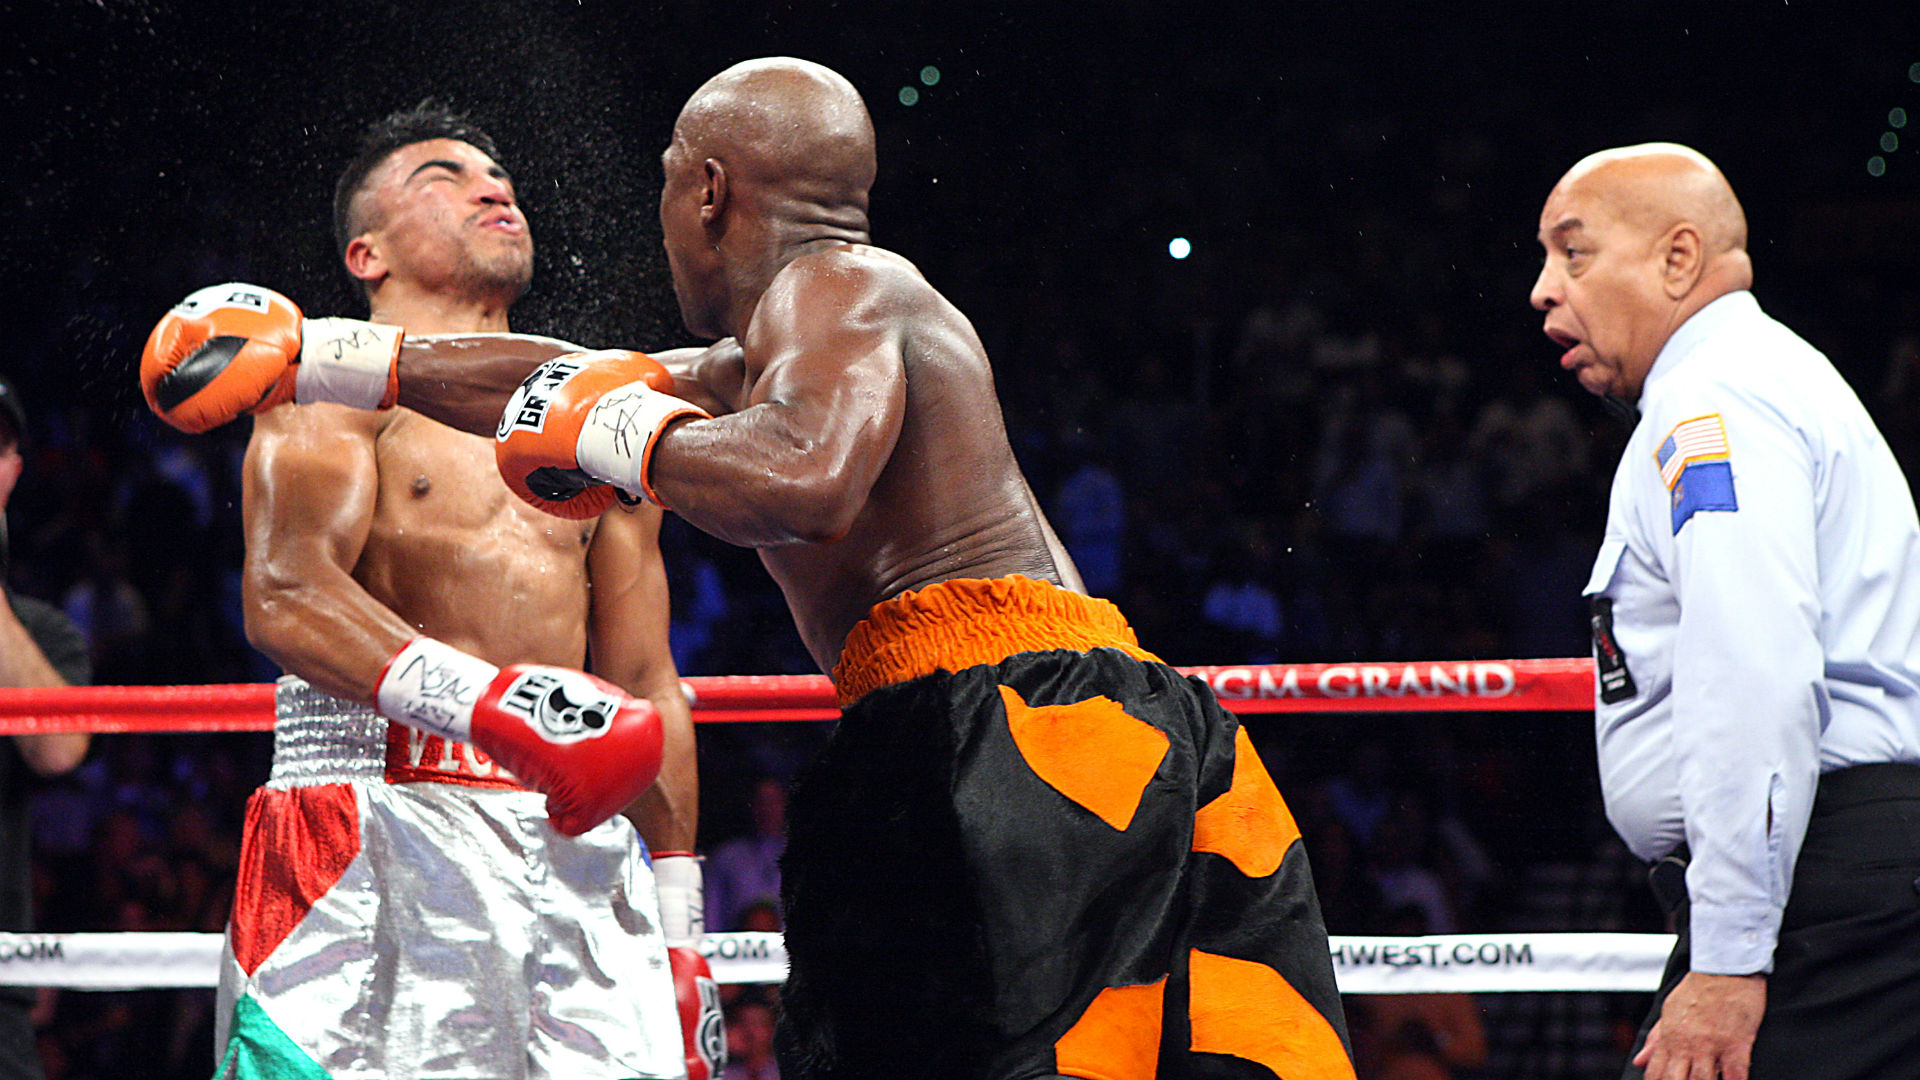 Victor Ortiz Floyd Mayweather Jr owes me a rematch Other 1920x1080